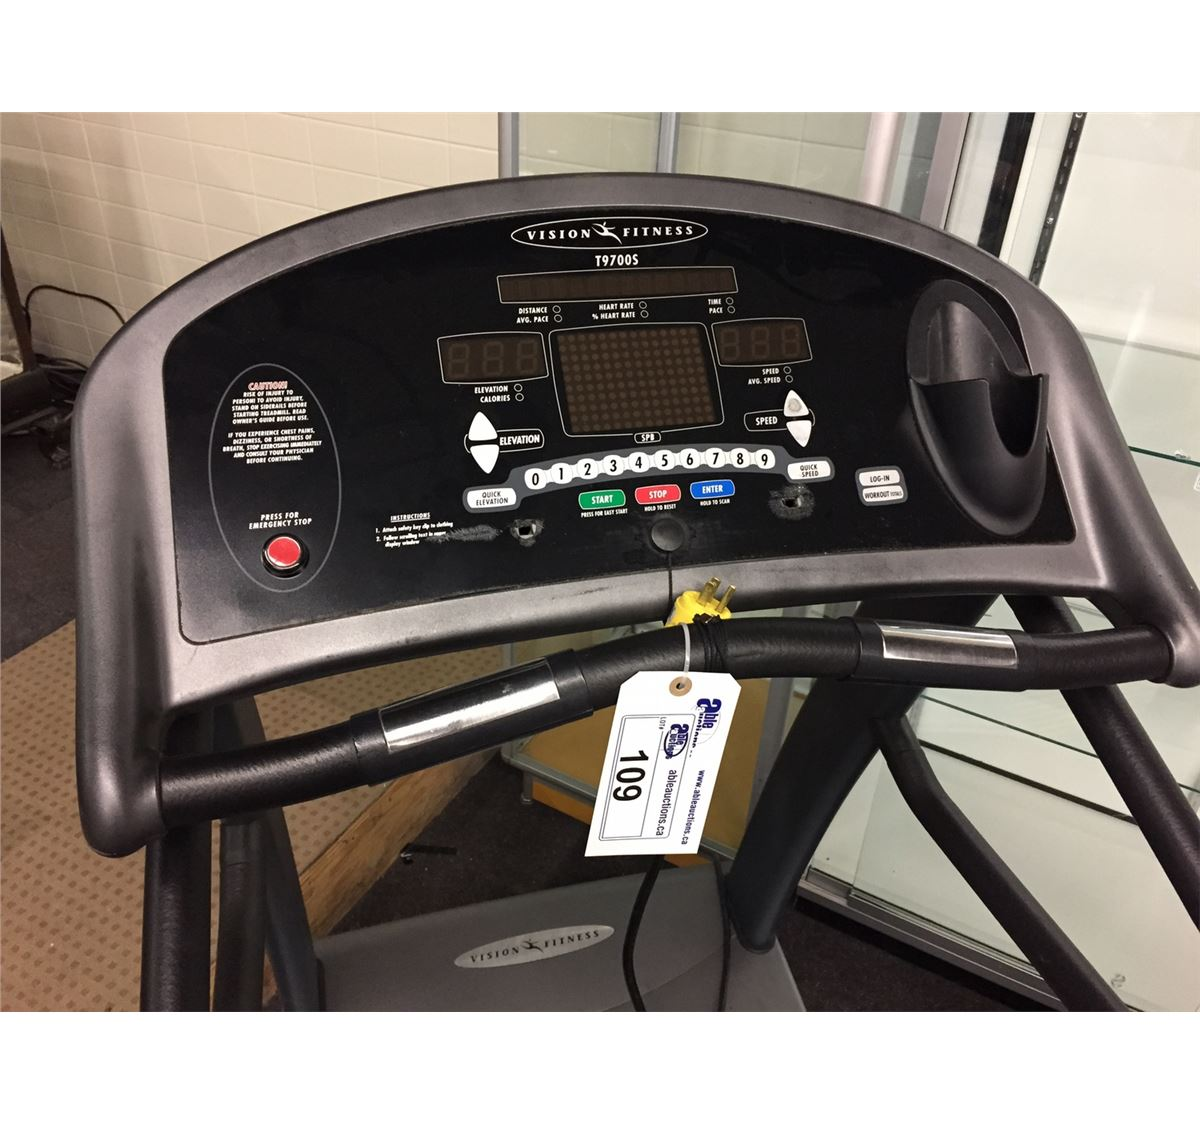 Commercial Treadmill Used: VISION FITNESS T9700S COMMERCIAL TREADMILL